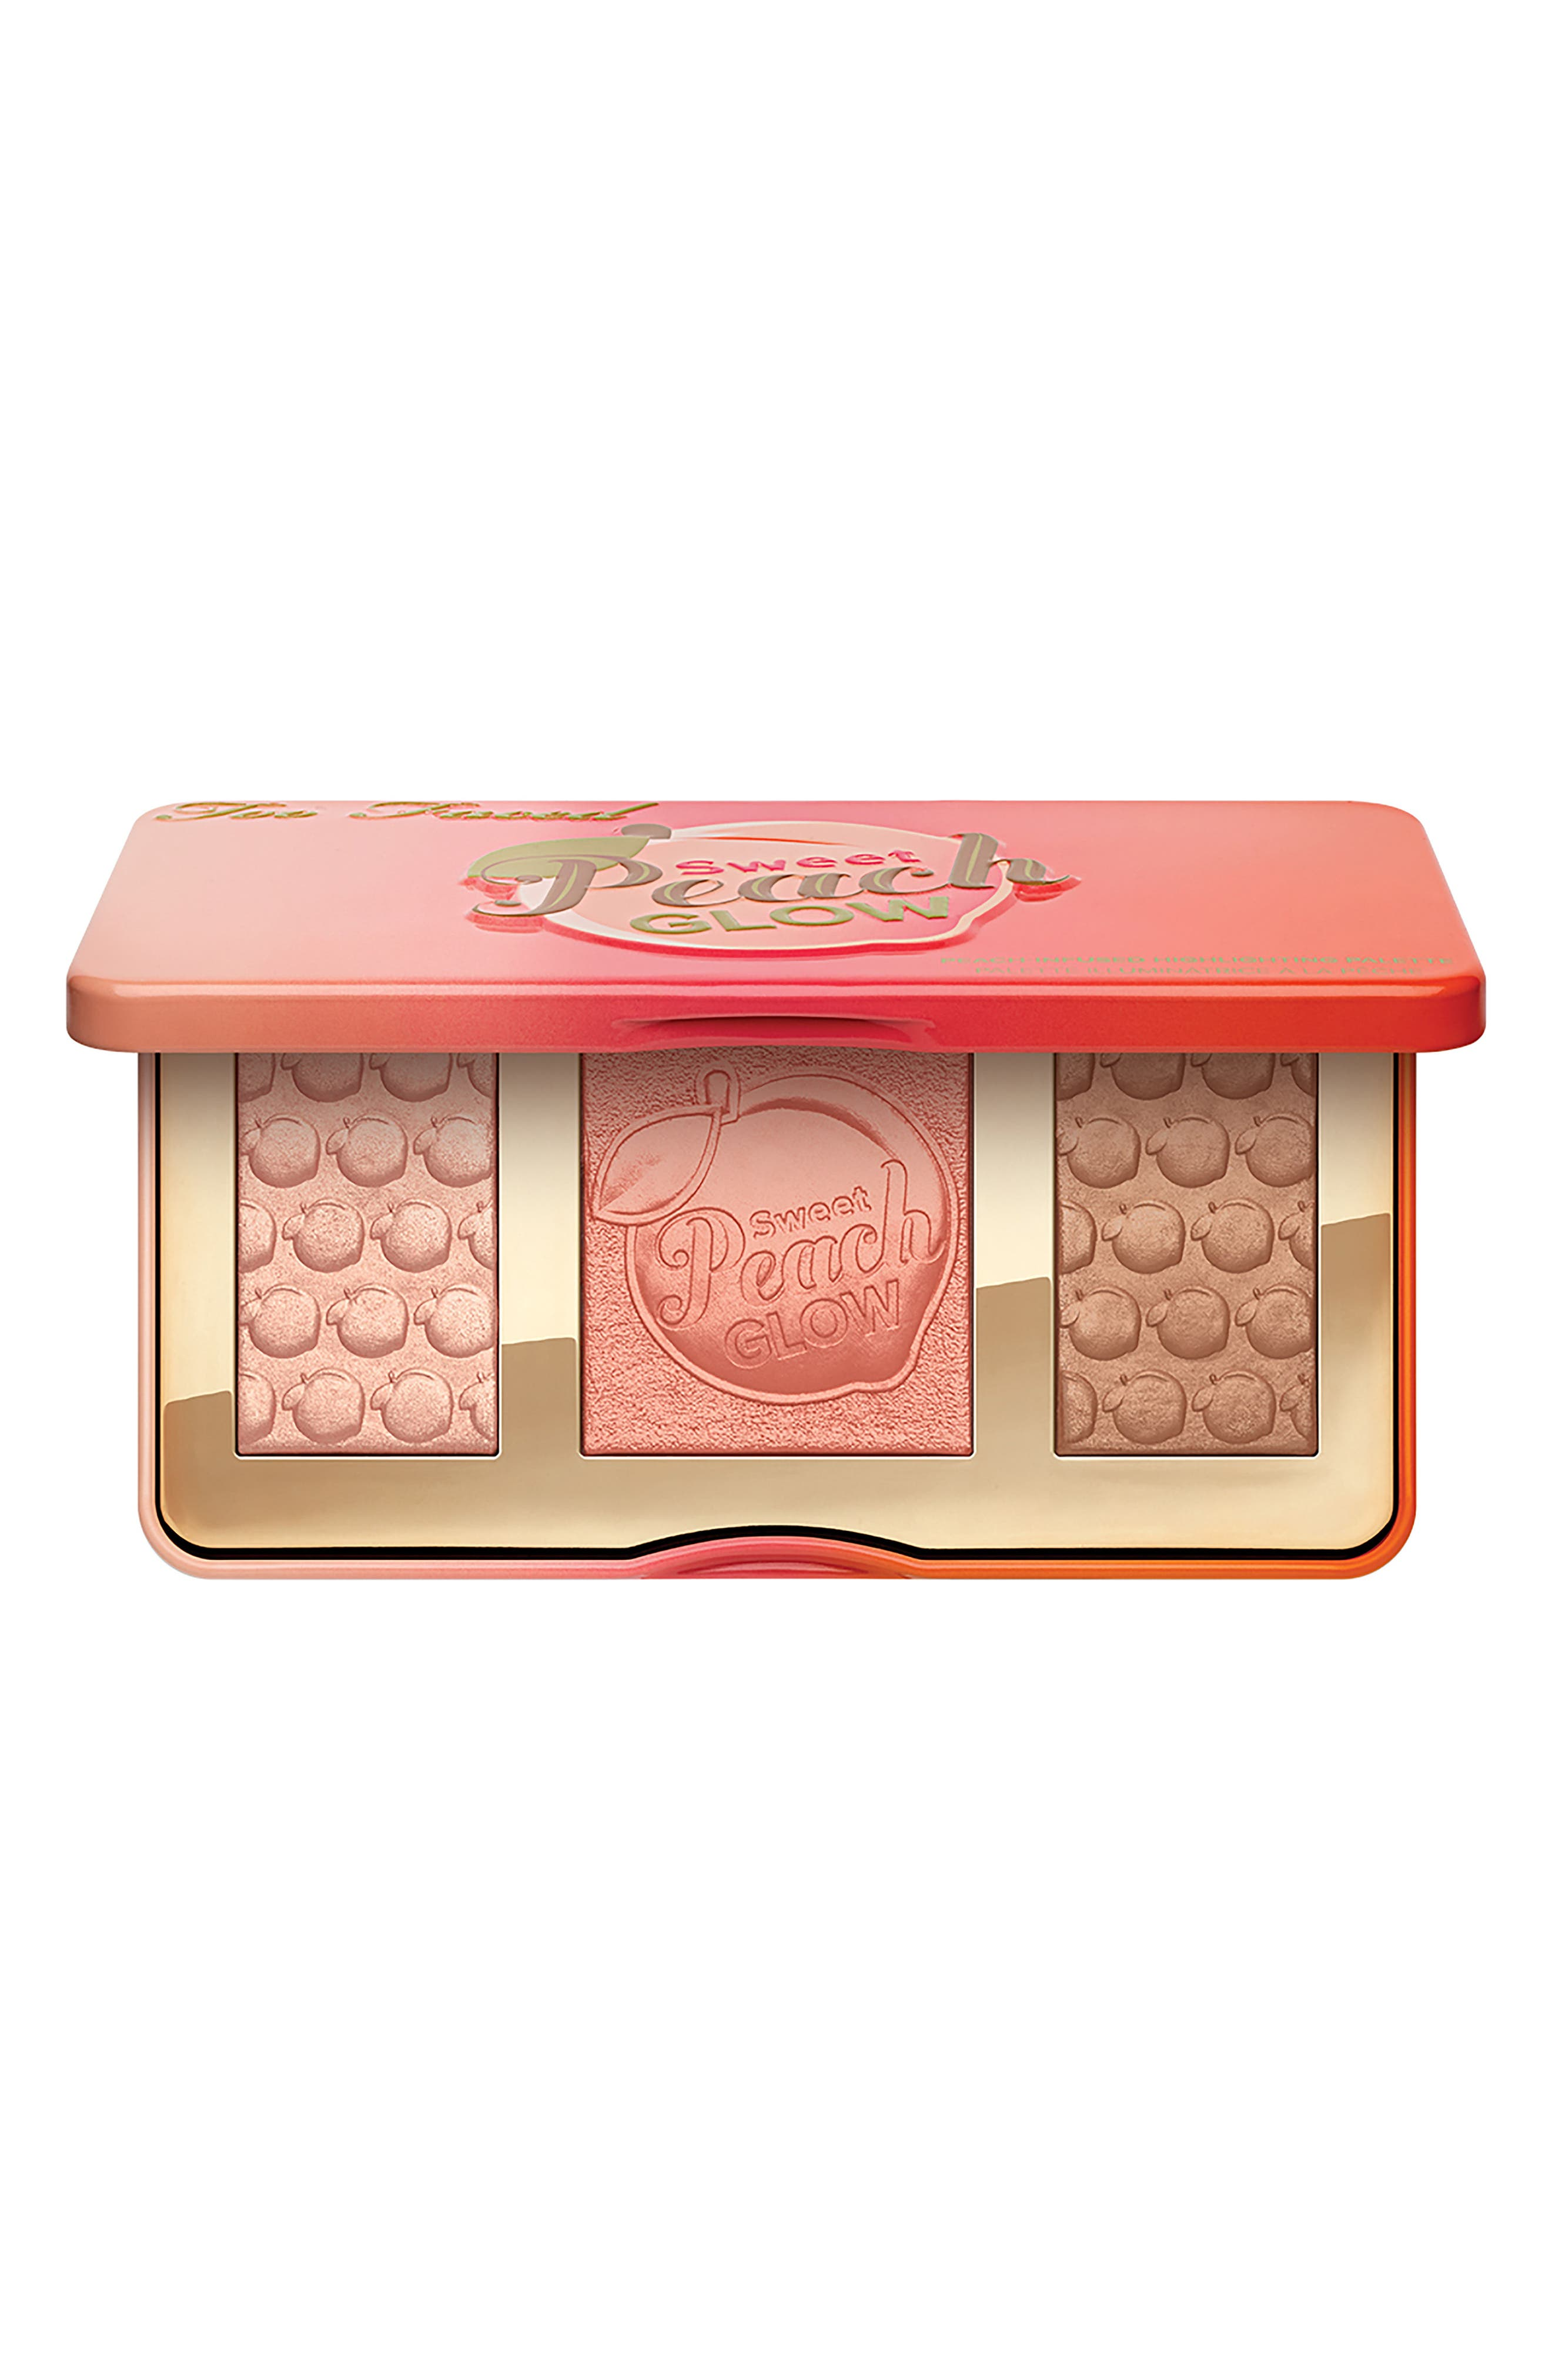 Sweet Peach Glow Highlighting Palette,                             Alternate thumbnail 6, color,                             NO COLOR